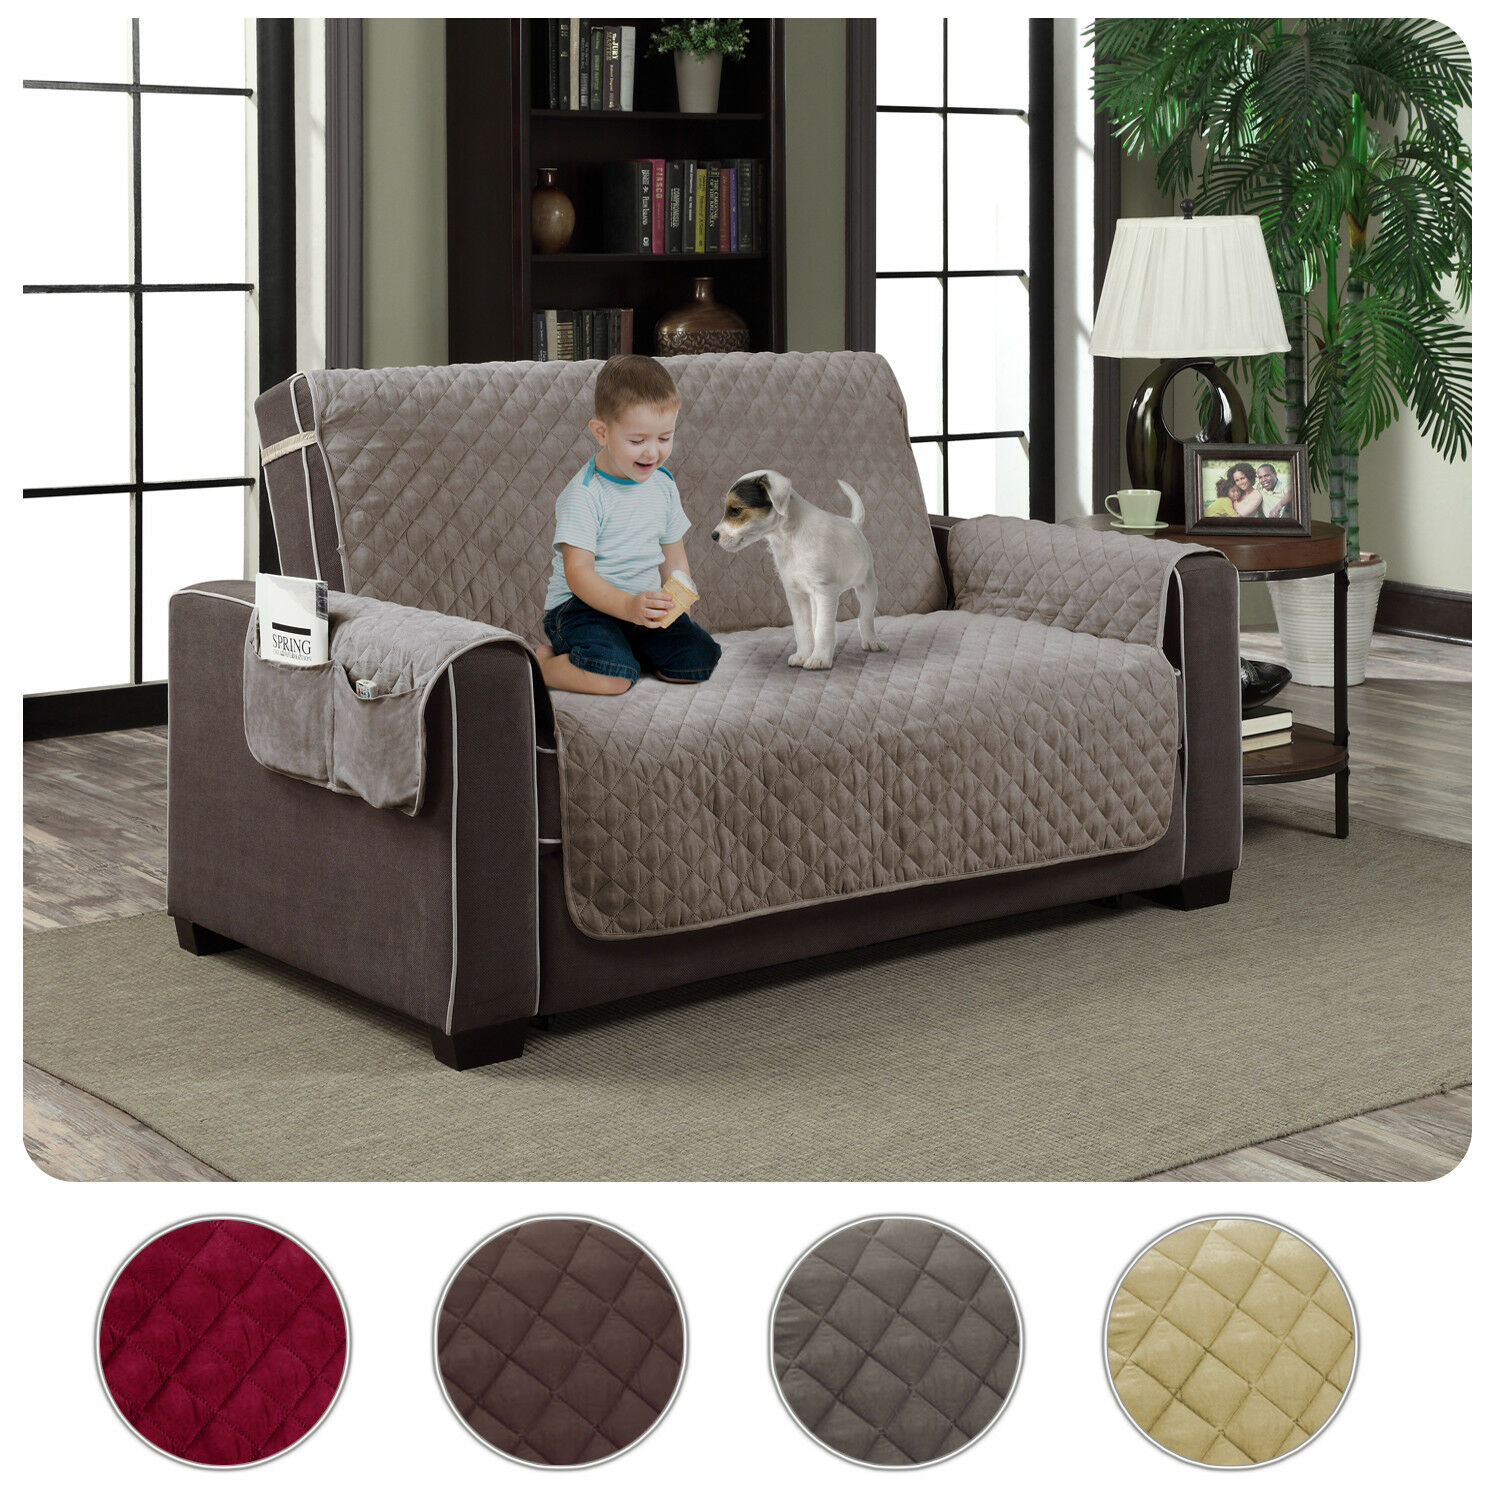 100+ [ Dog Couch Protector ] | Furniture Boho Couch Cover Couch